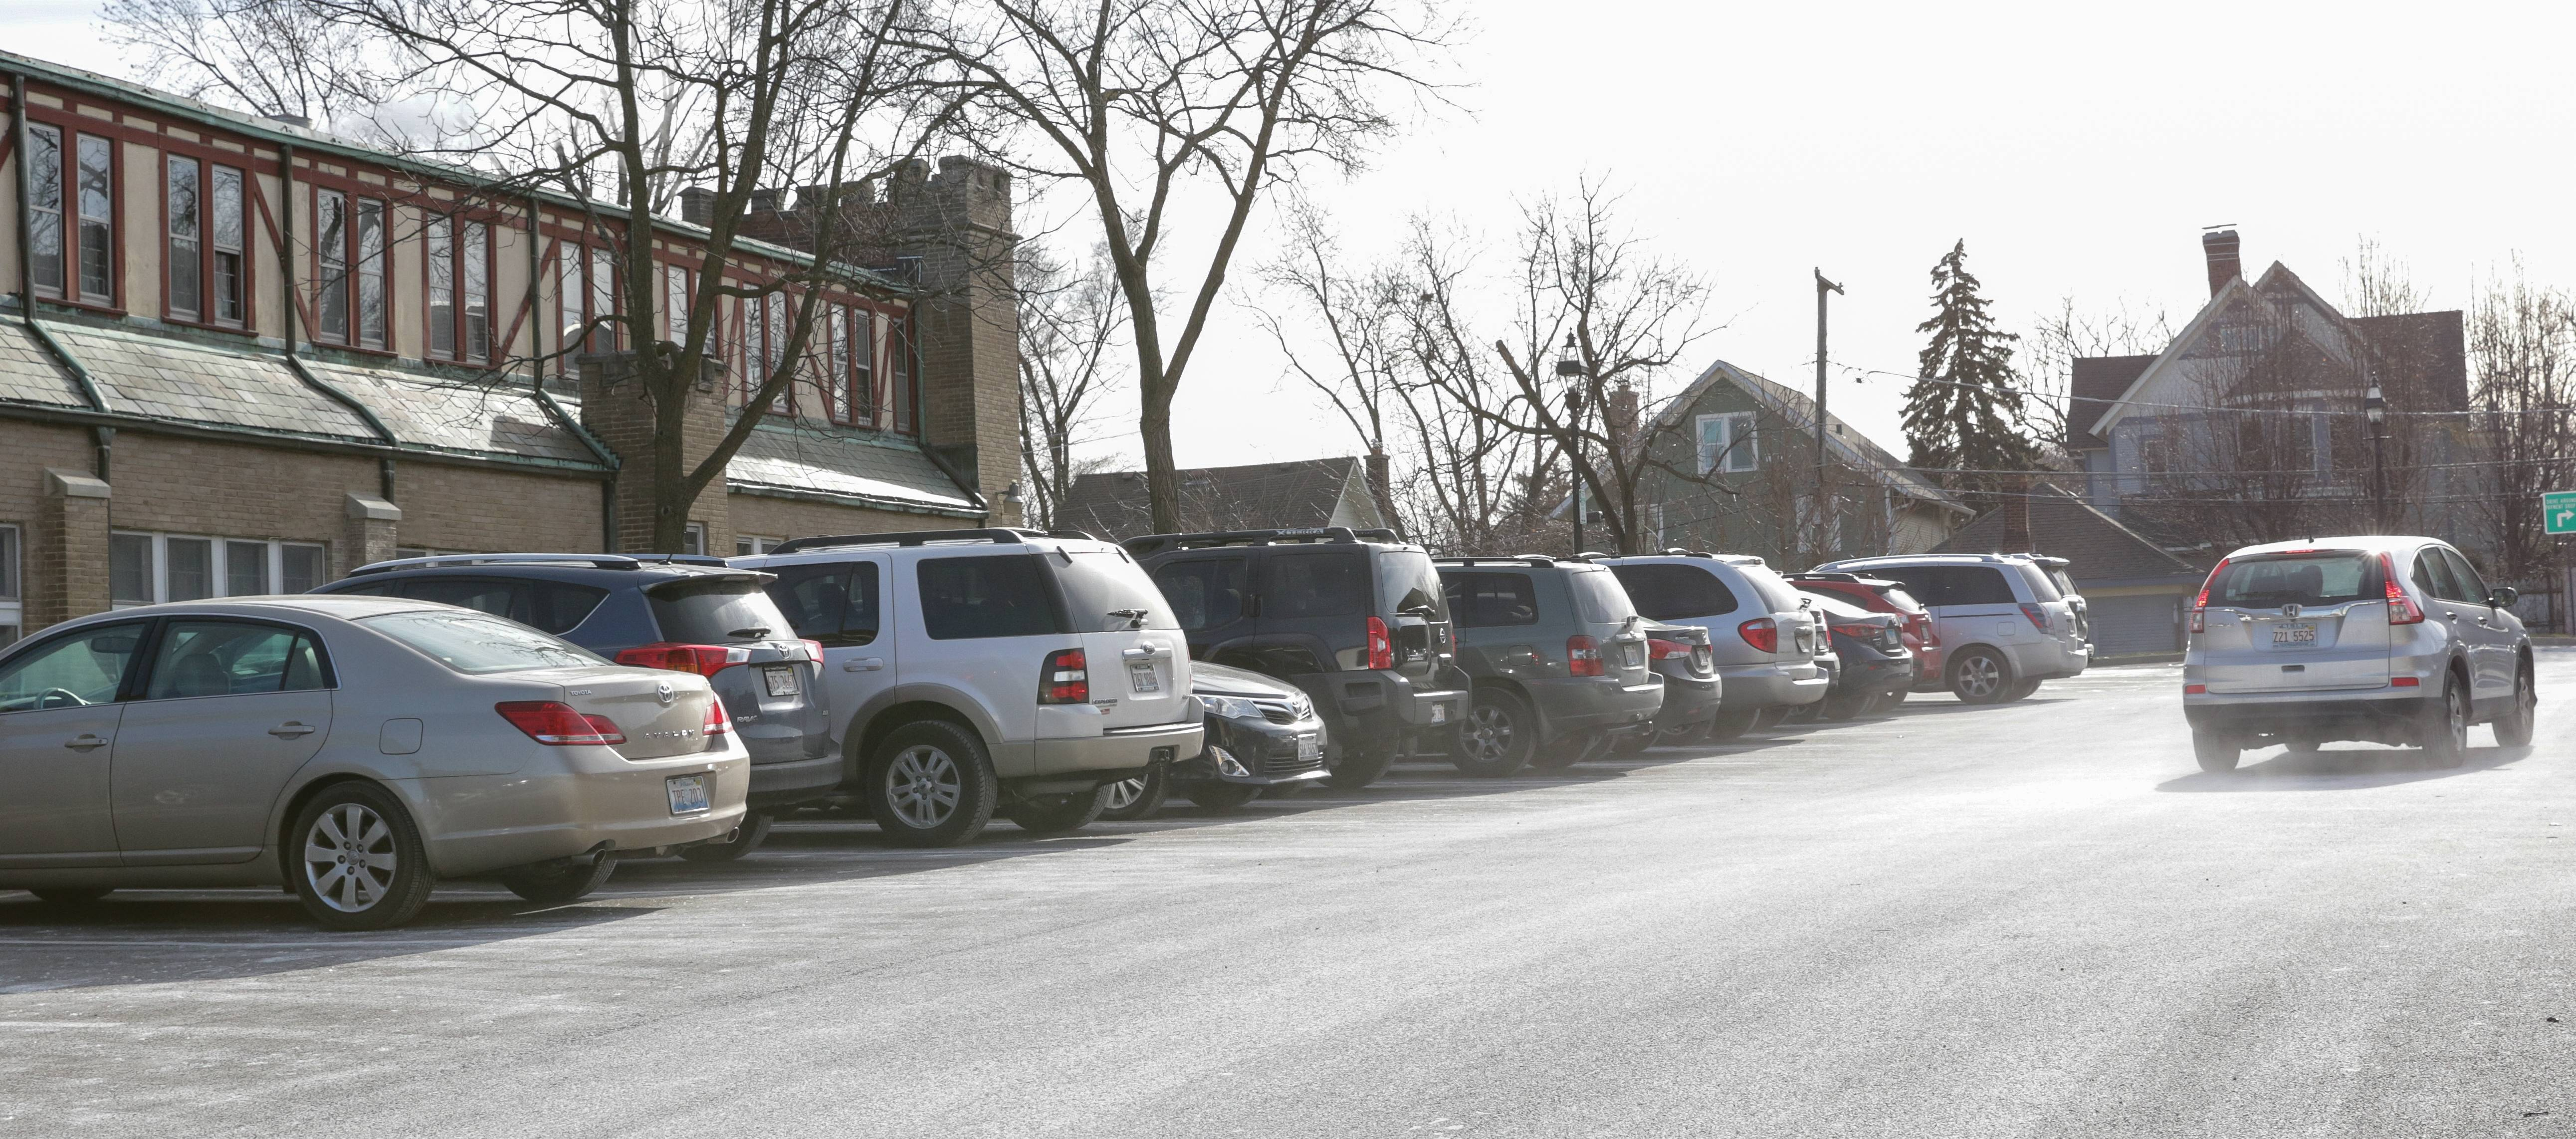 A proposed parking garage at the Civic Center parking lot in downtown Glen Ellyn could cost roughly $10 million to $15 million.